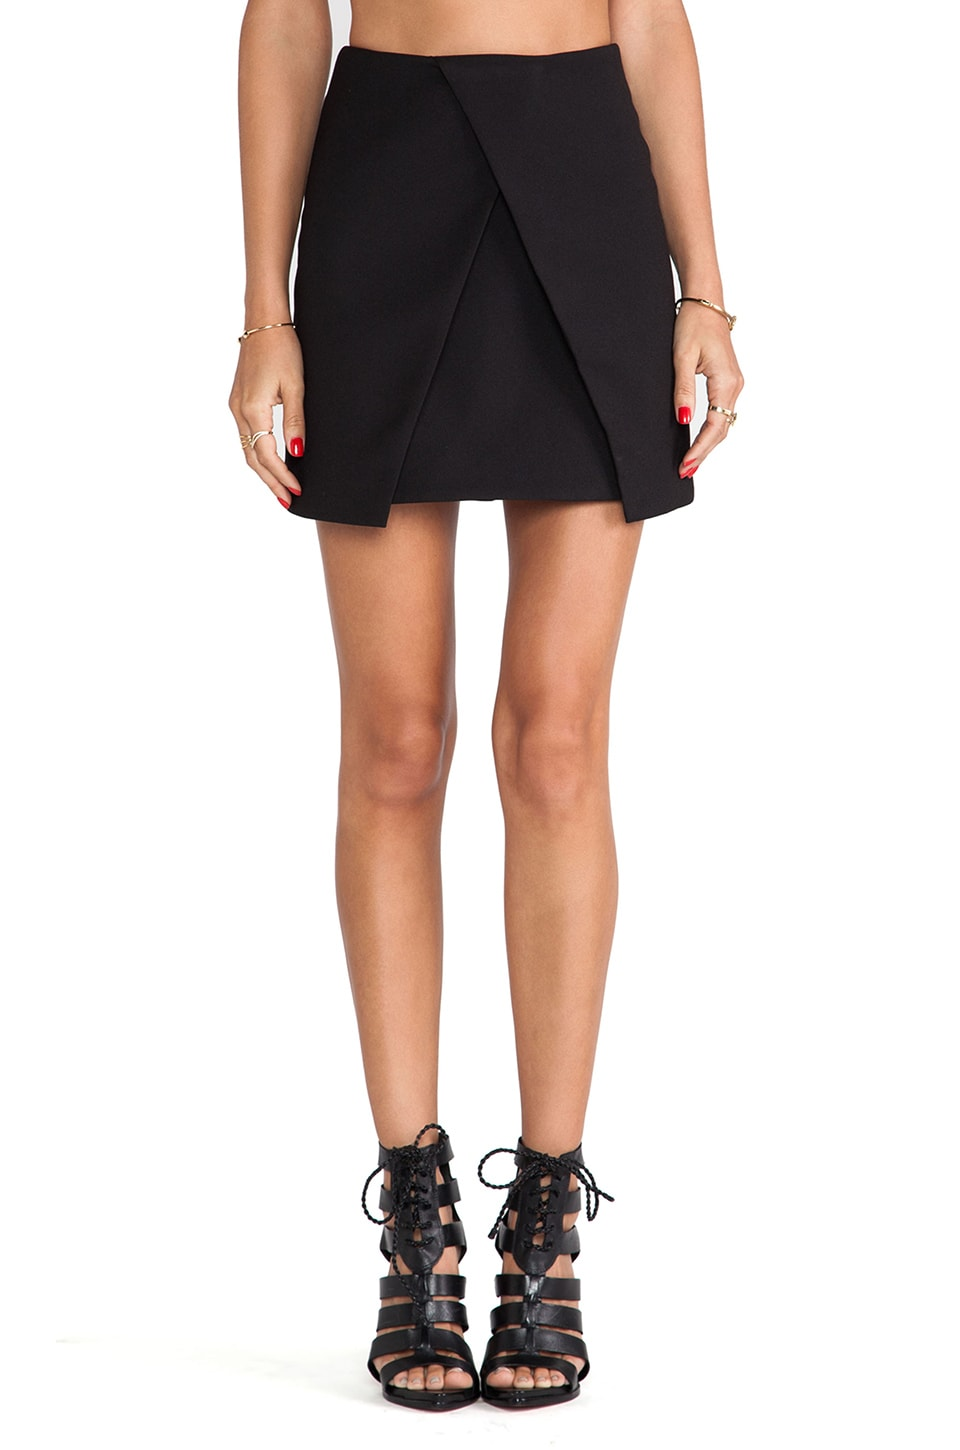 C/MEO New Day Skirt in Black